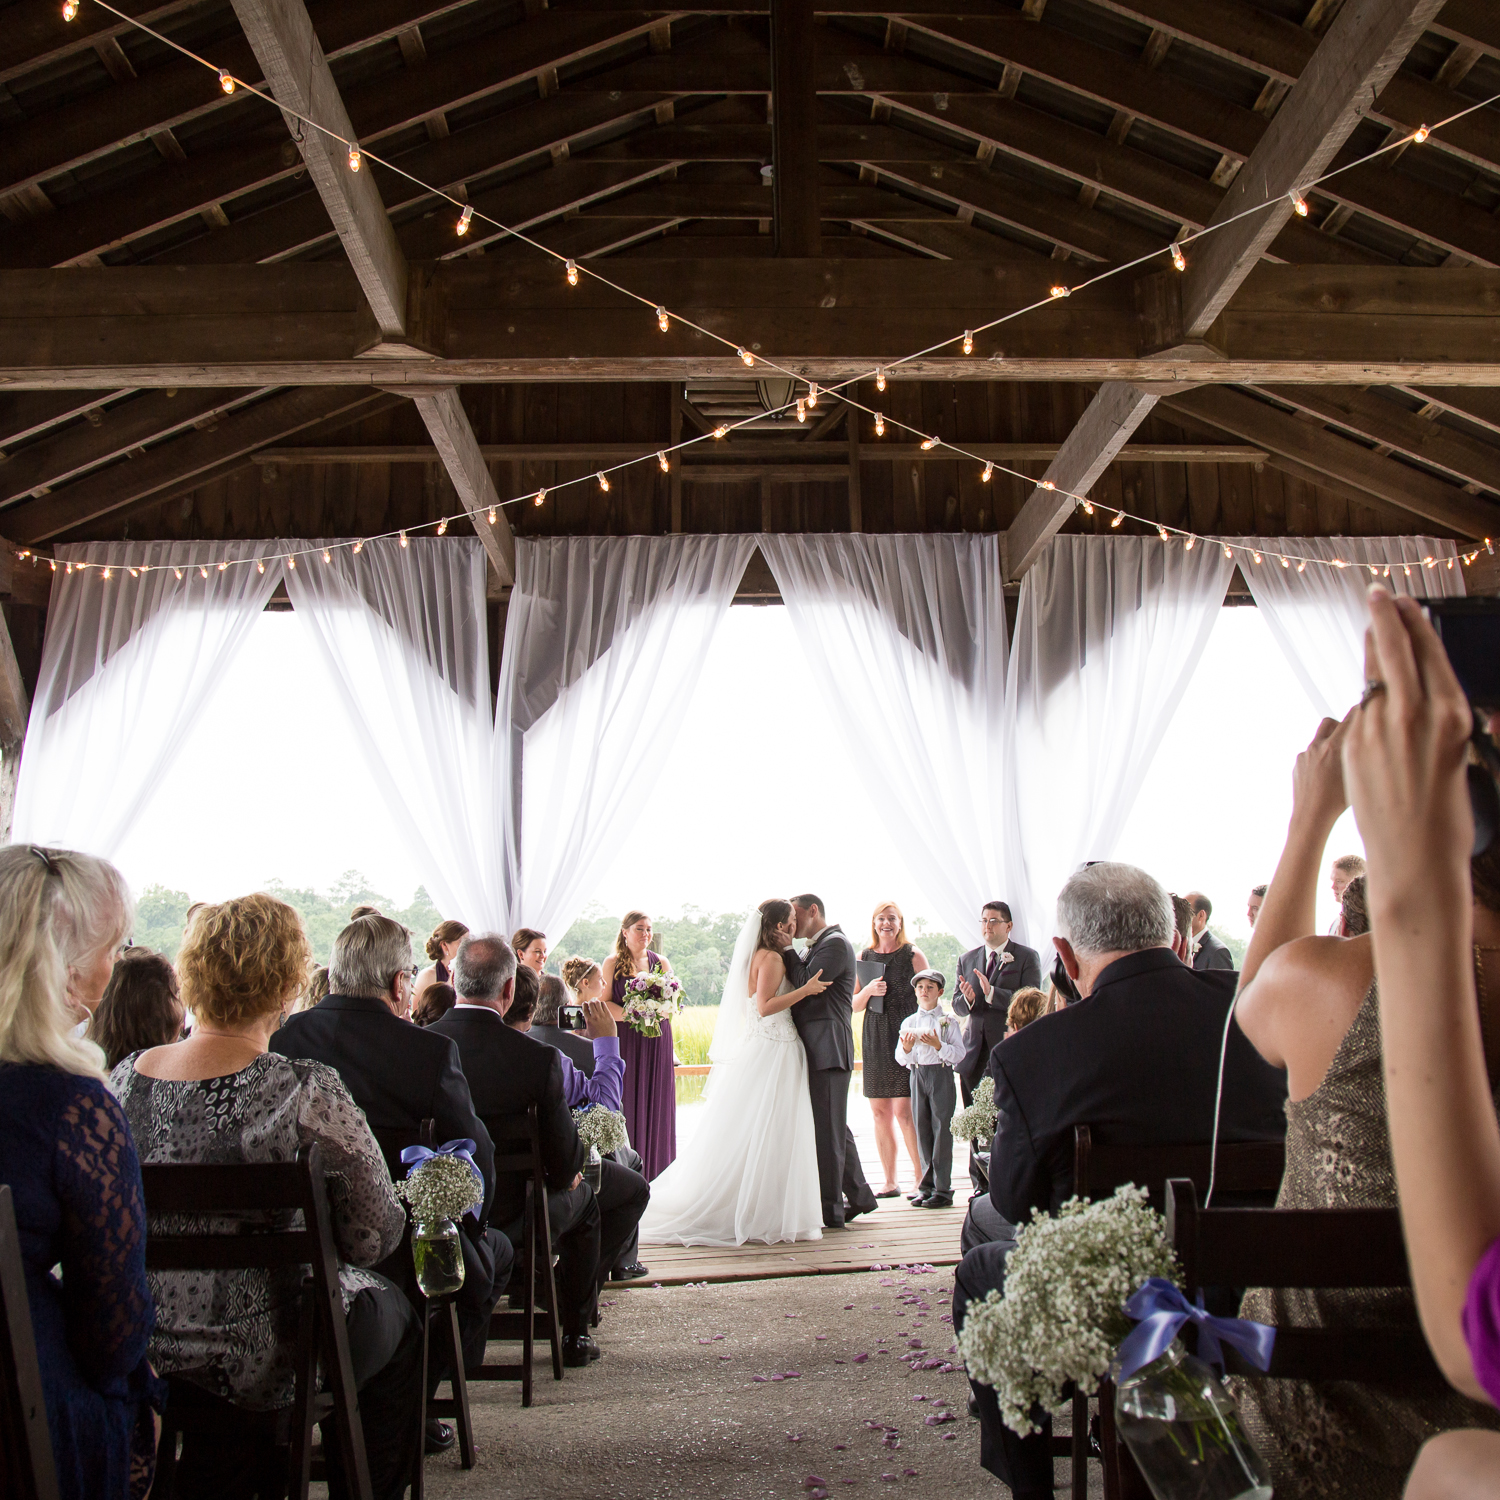 Boone Hall Cotton Dock Ceremony by MCG